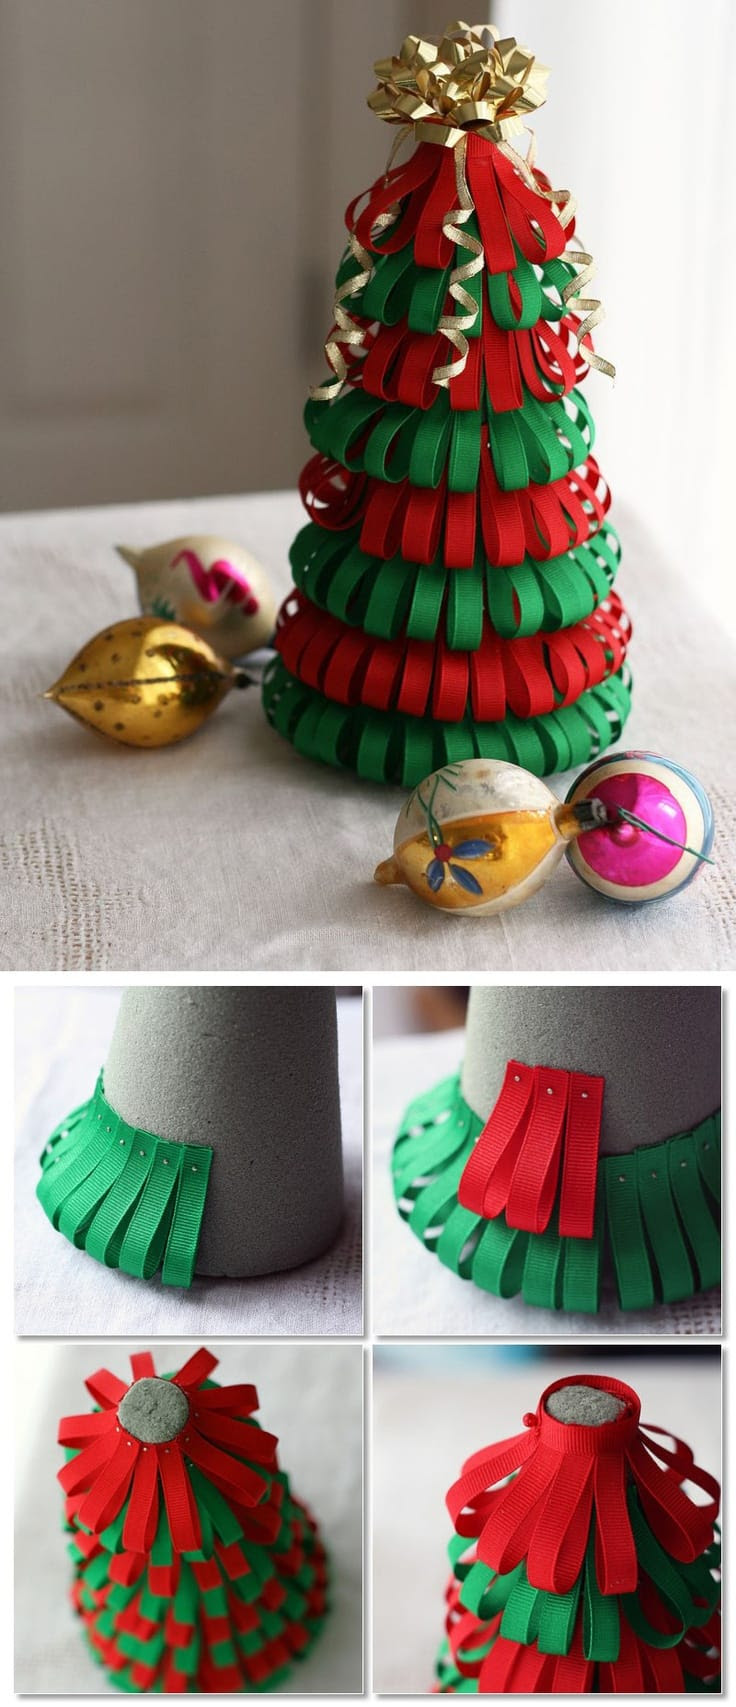 31 cute and fun diy christmas decorations designbump - Cute Diy Christmas Decorations